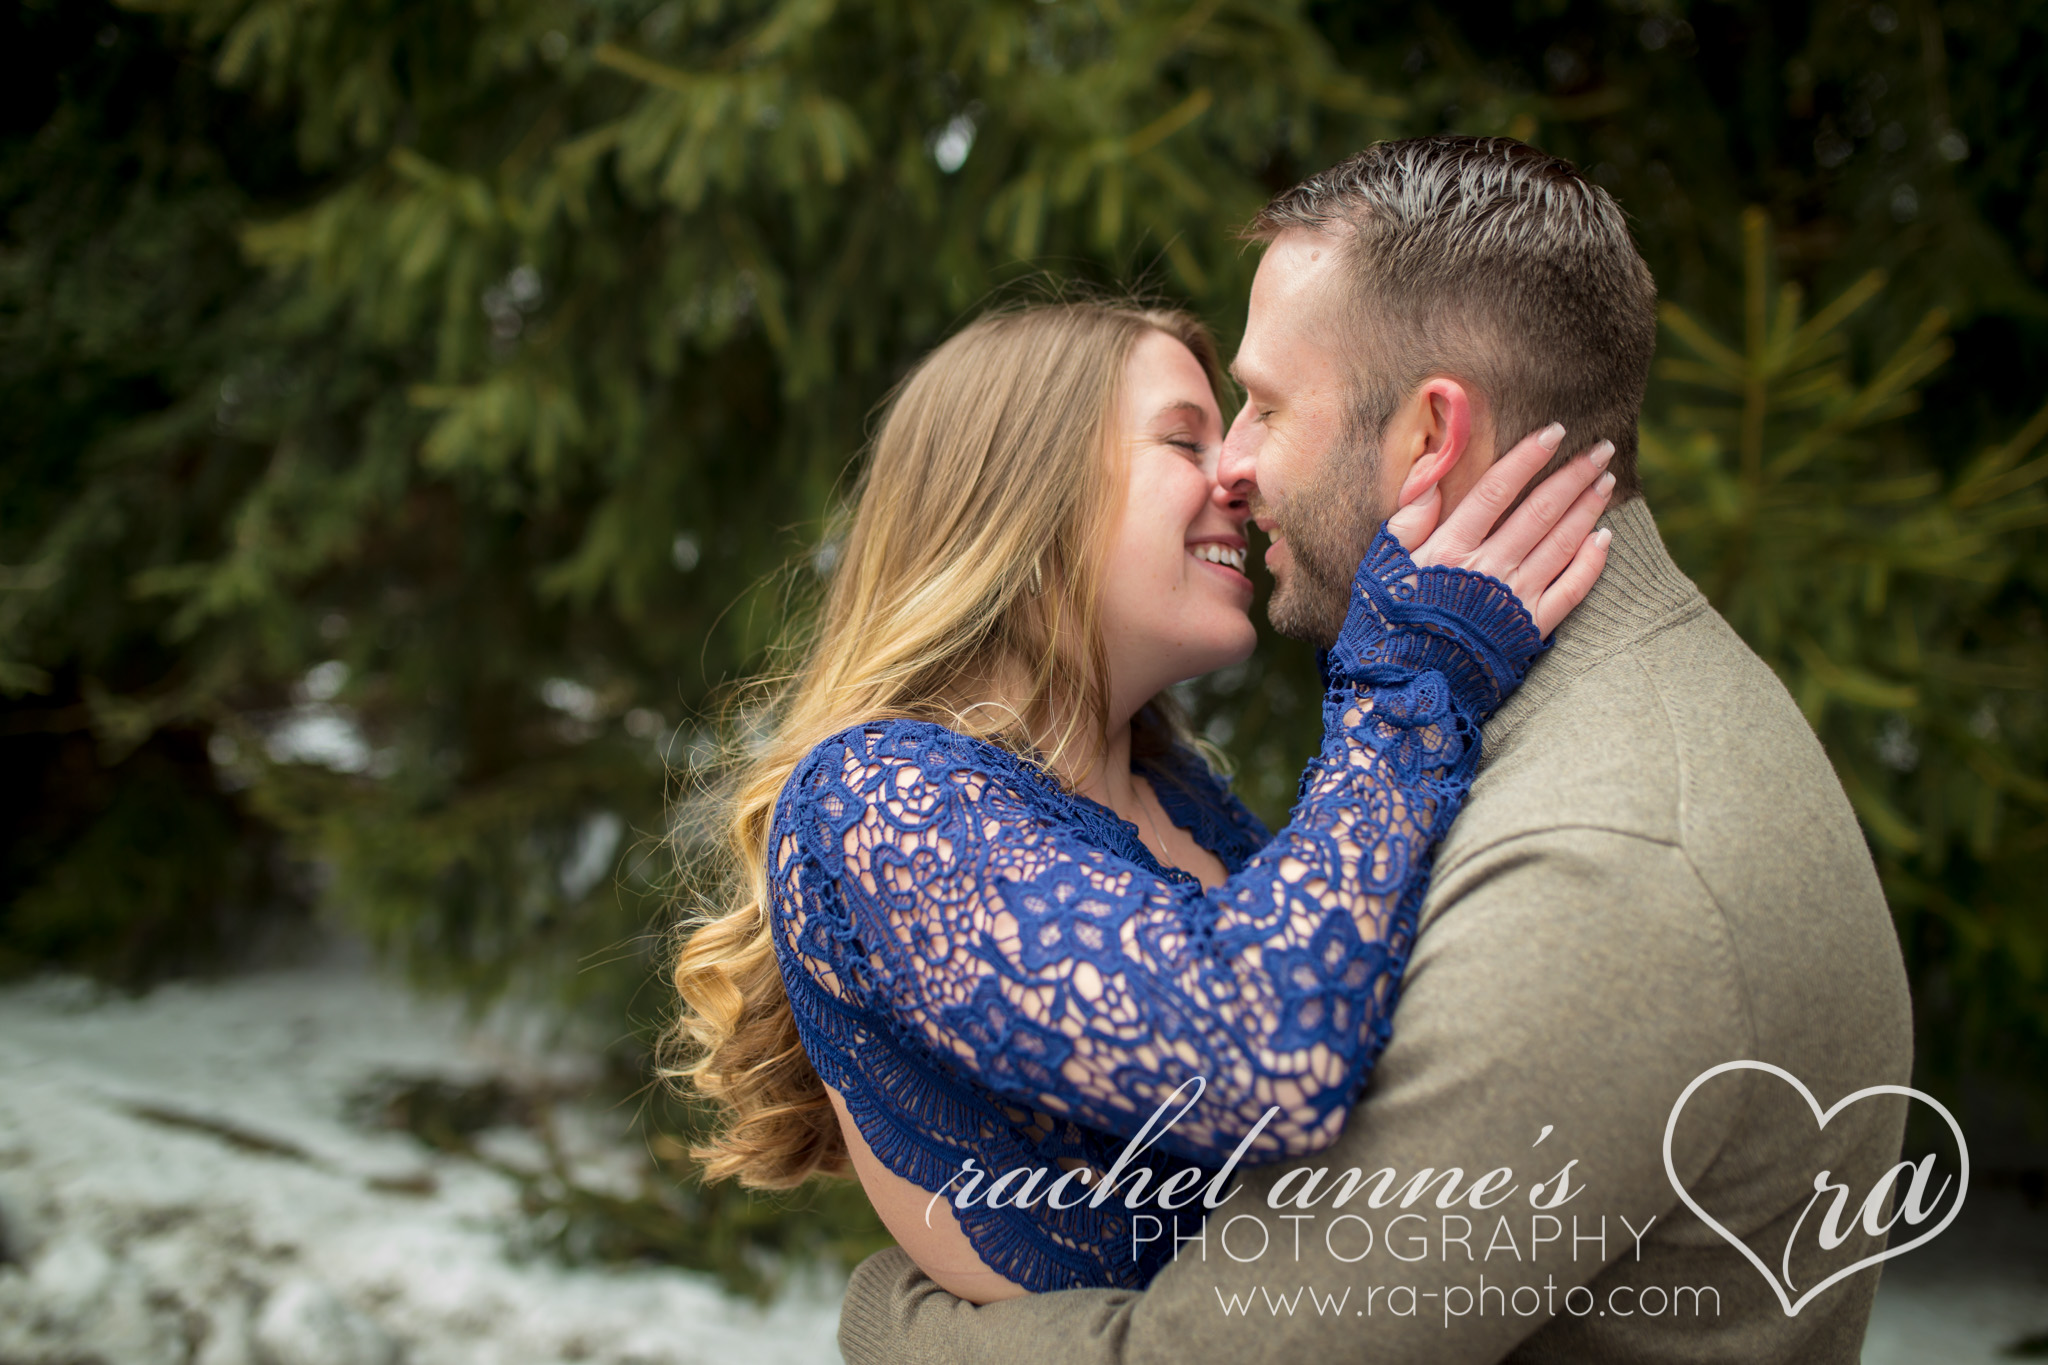 069-JKM-DUBOIS-PA-ENGAGEMENT-PHOTOGRAPHY.jpg